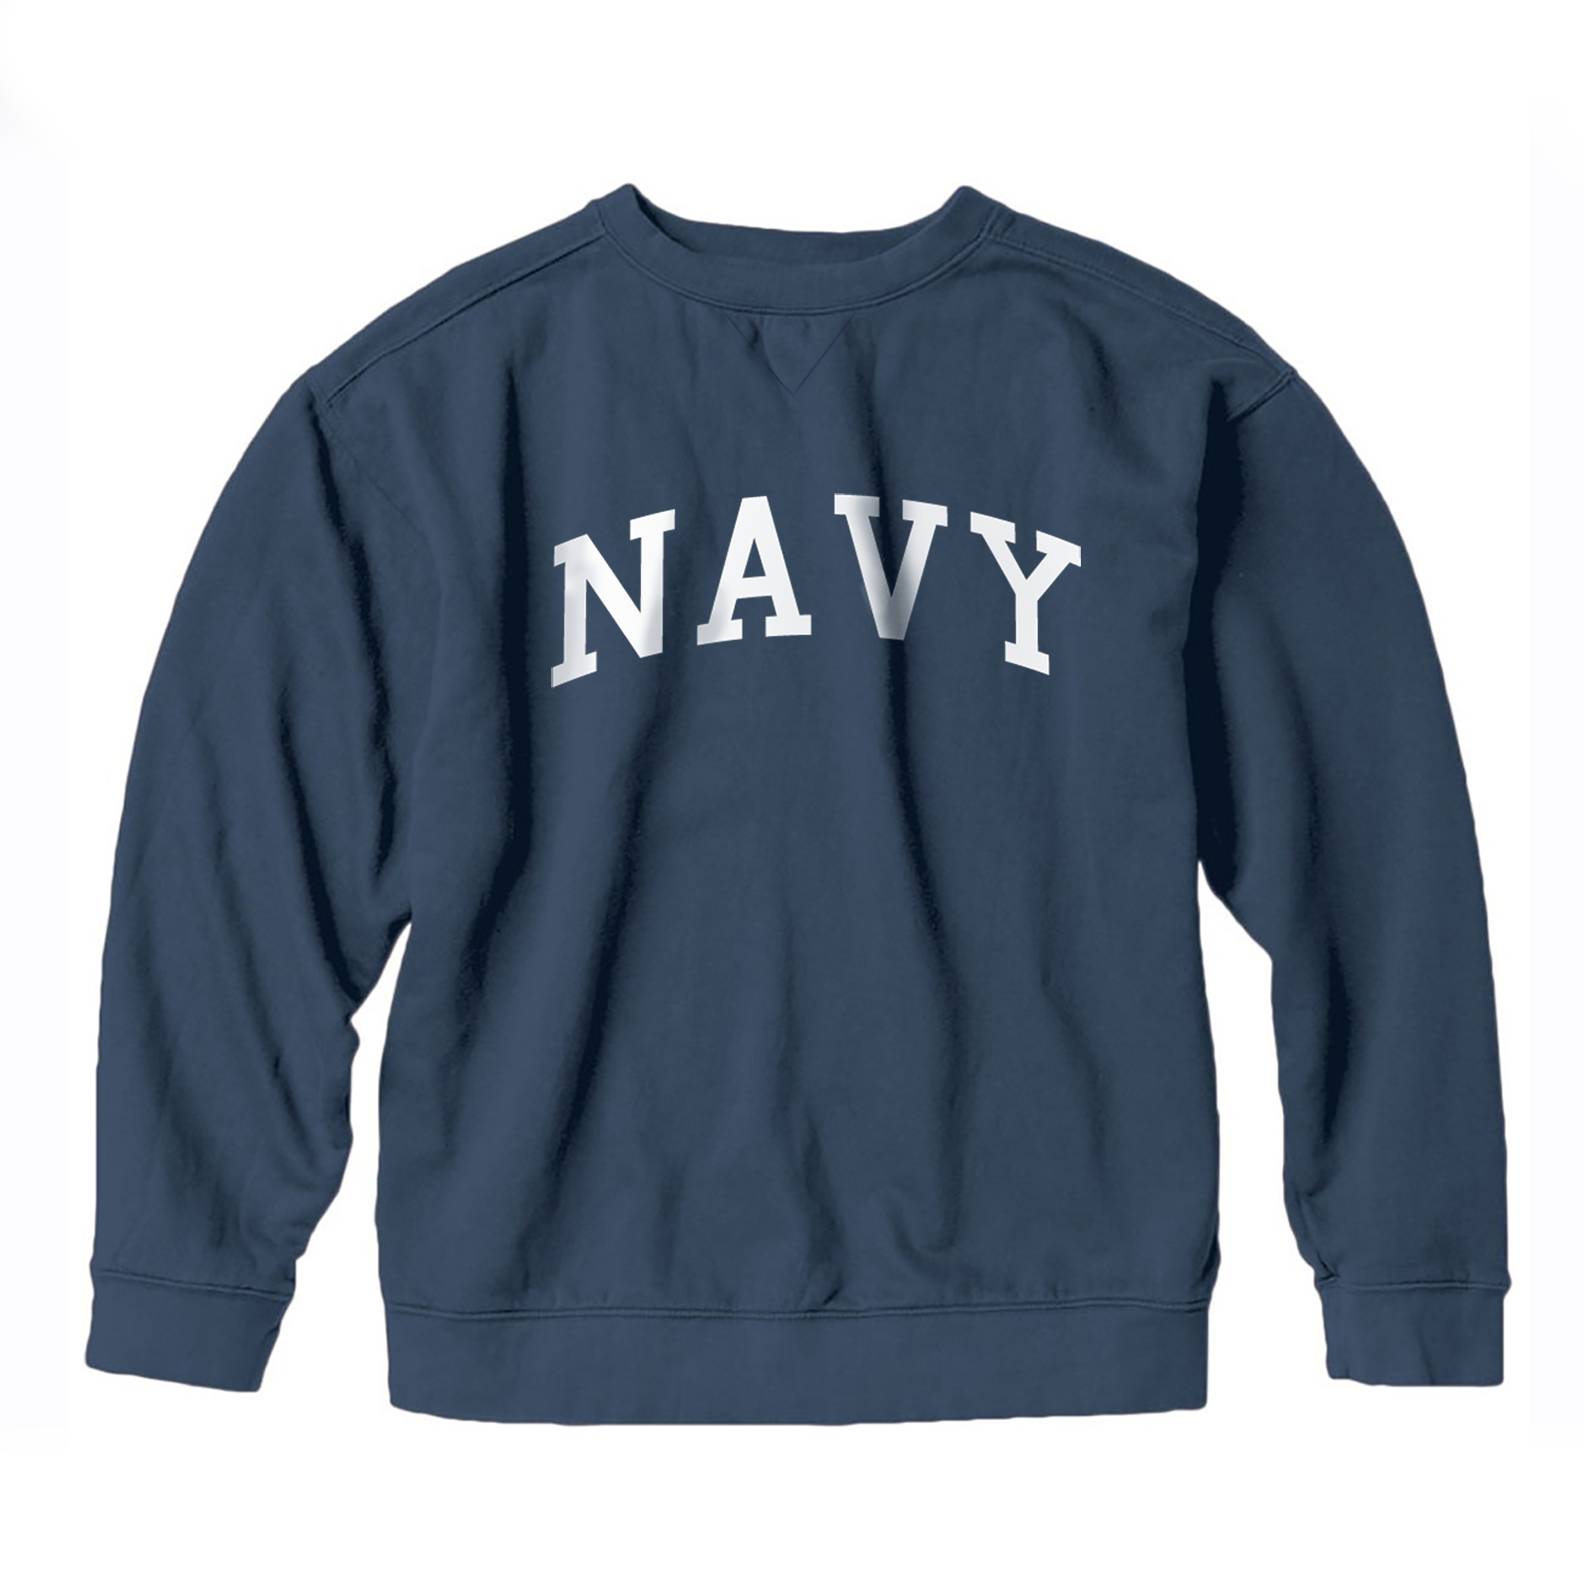 S.L. Revival Co. Navy Collegiate Sweatshirt, Blue